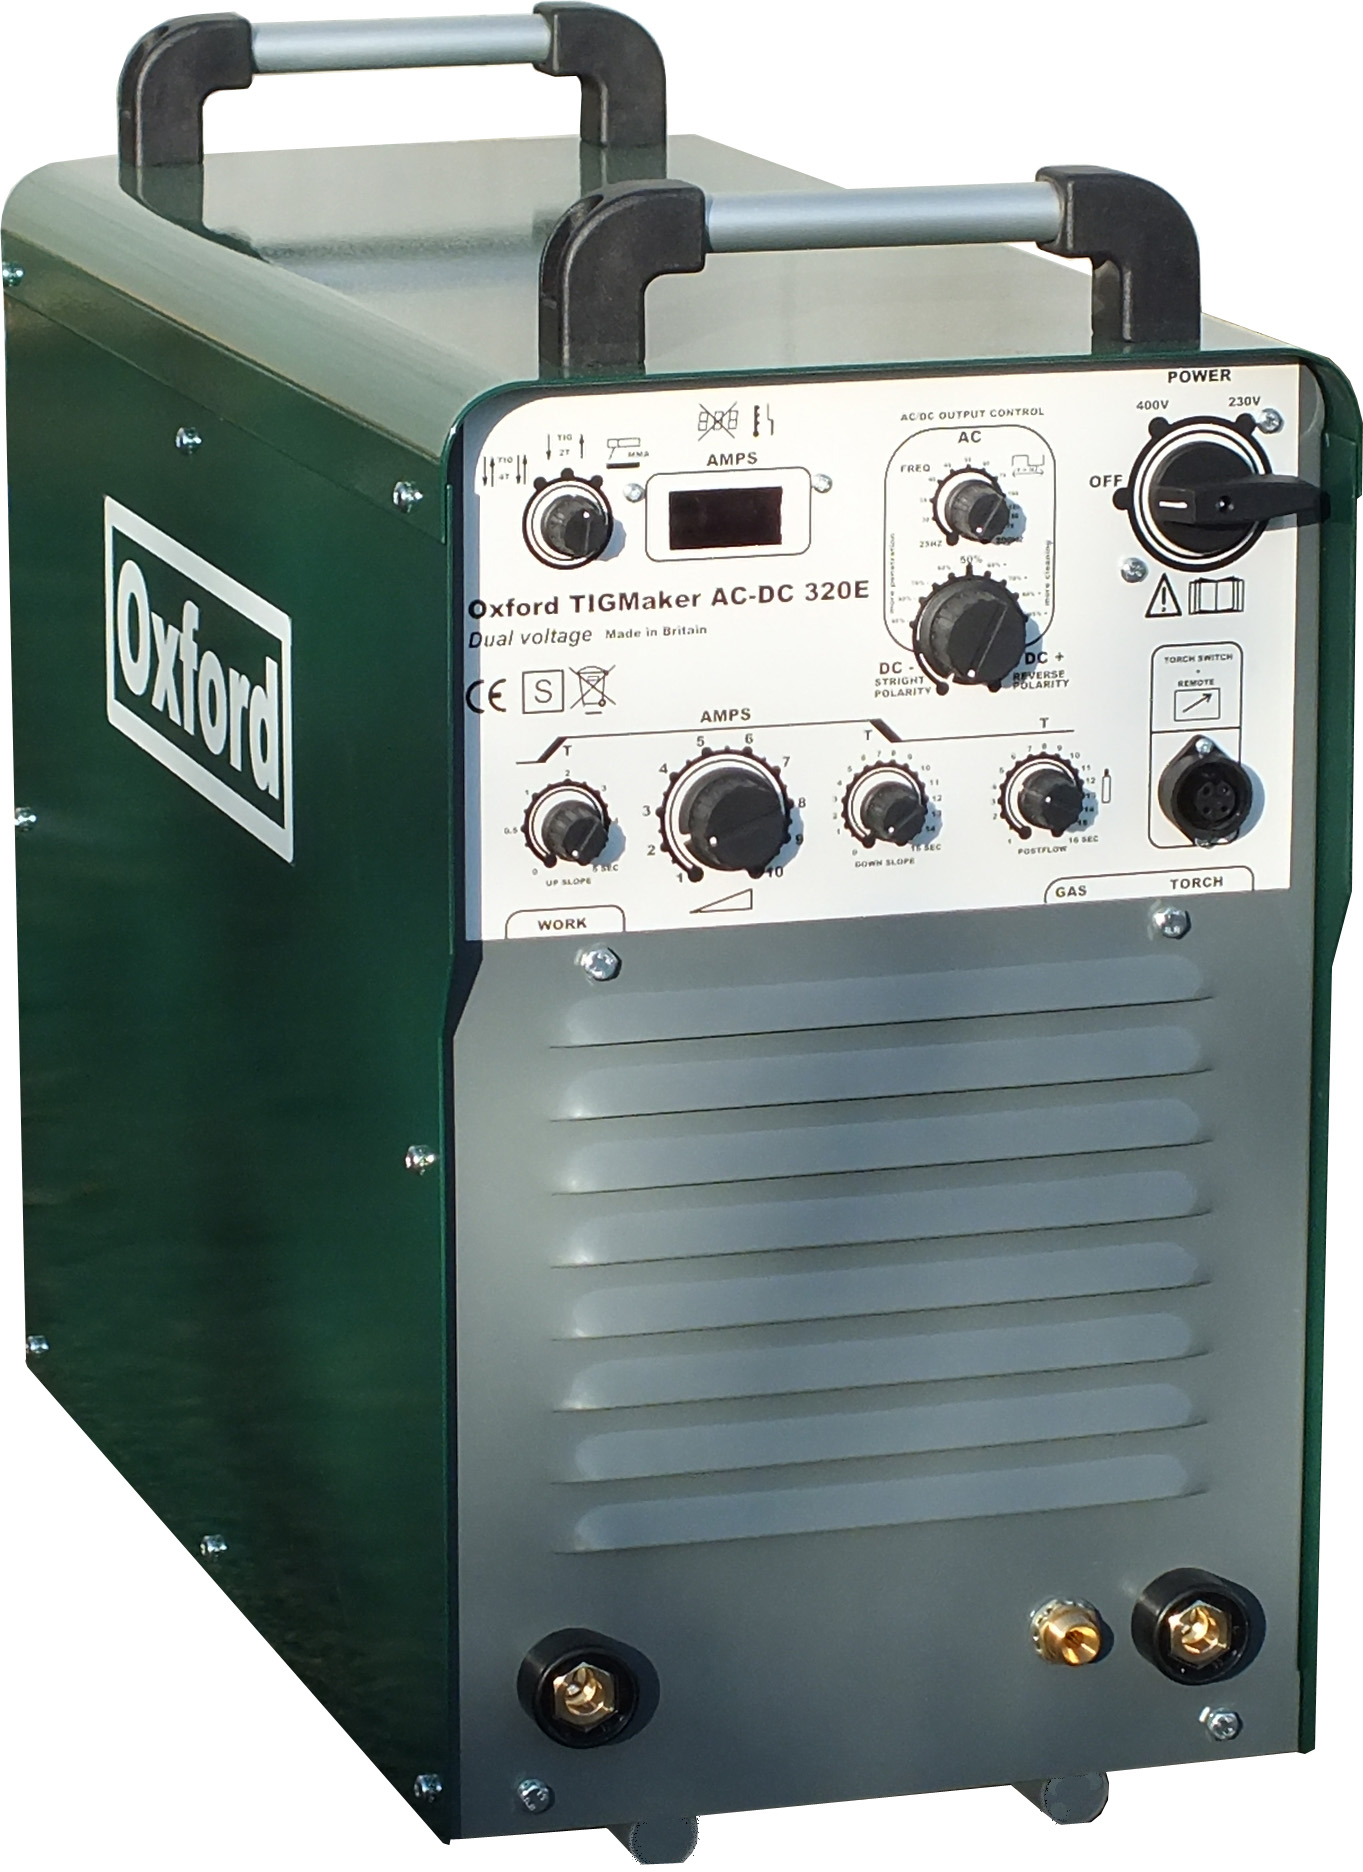 Oxford  TIGMaker 330E dual voltage 230V/400V